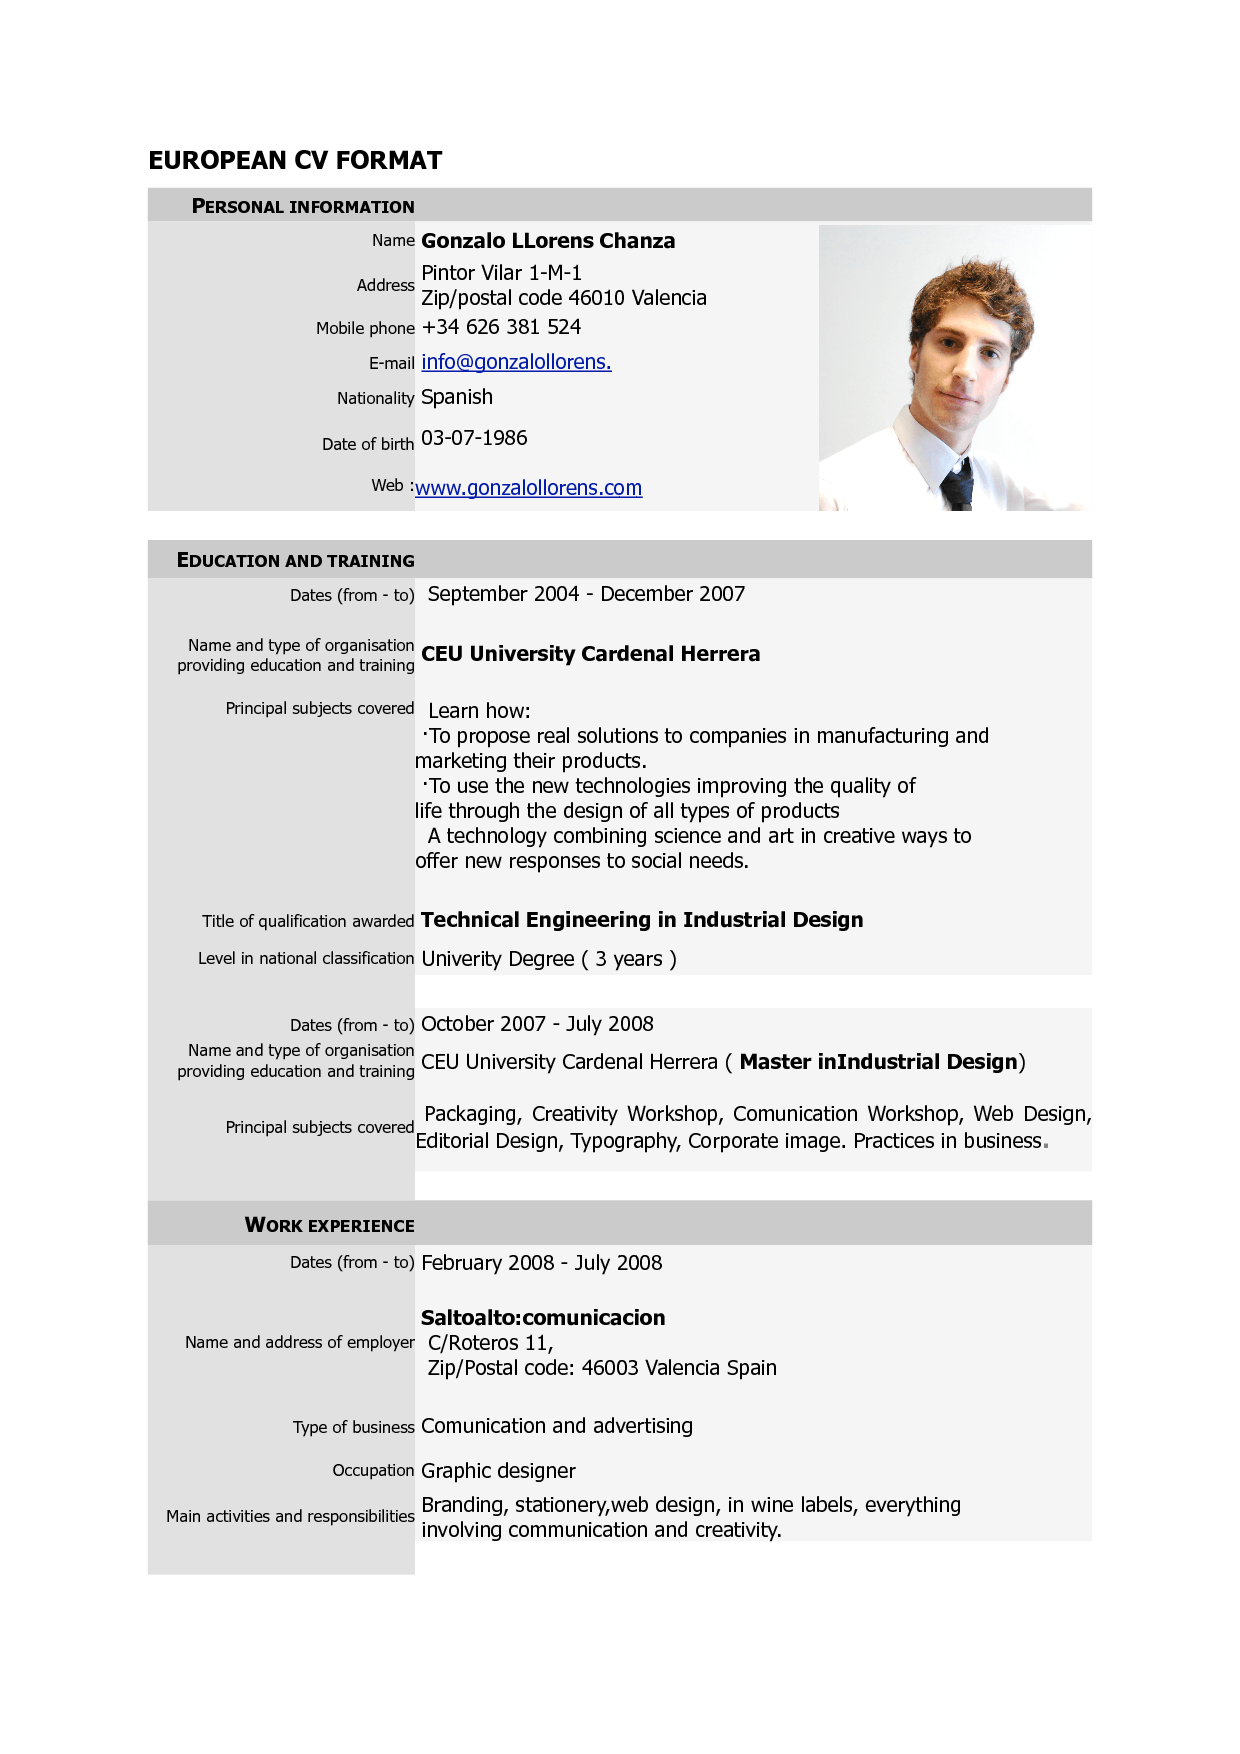 Resume Template In Word 2007 Formatforwritingaresume47755480Bbnysr 1240×1754